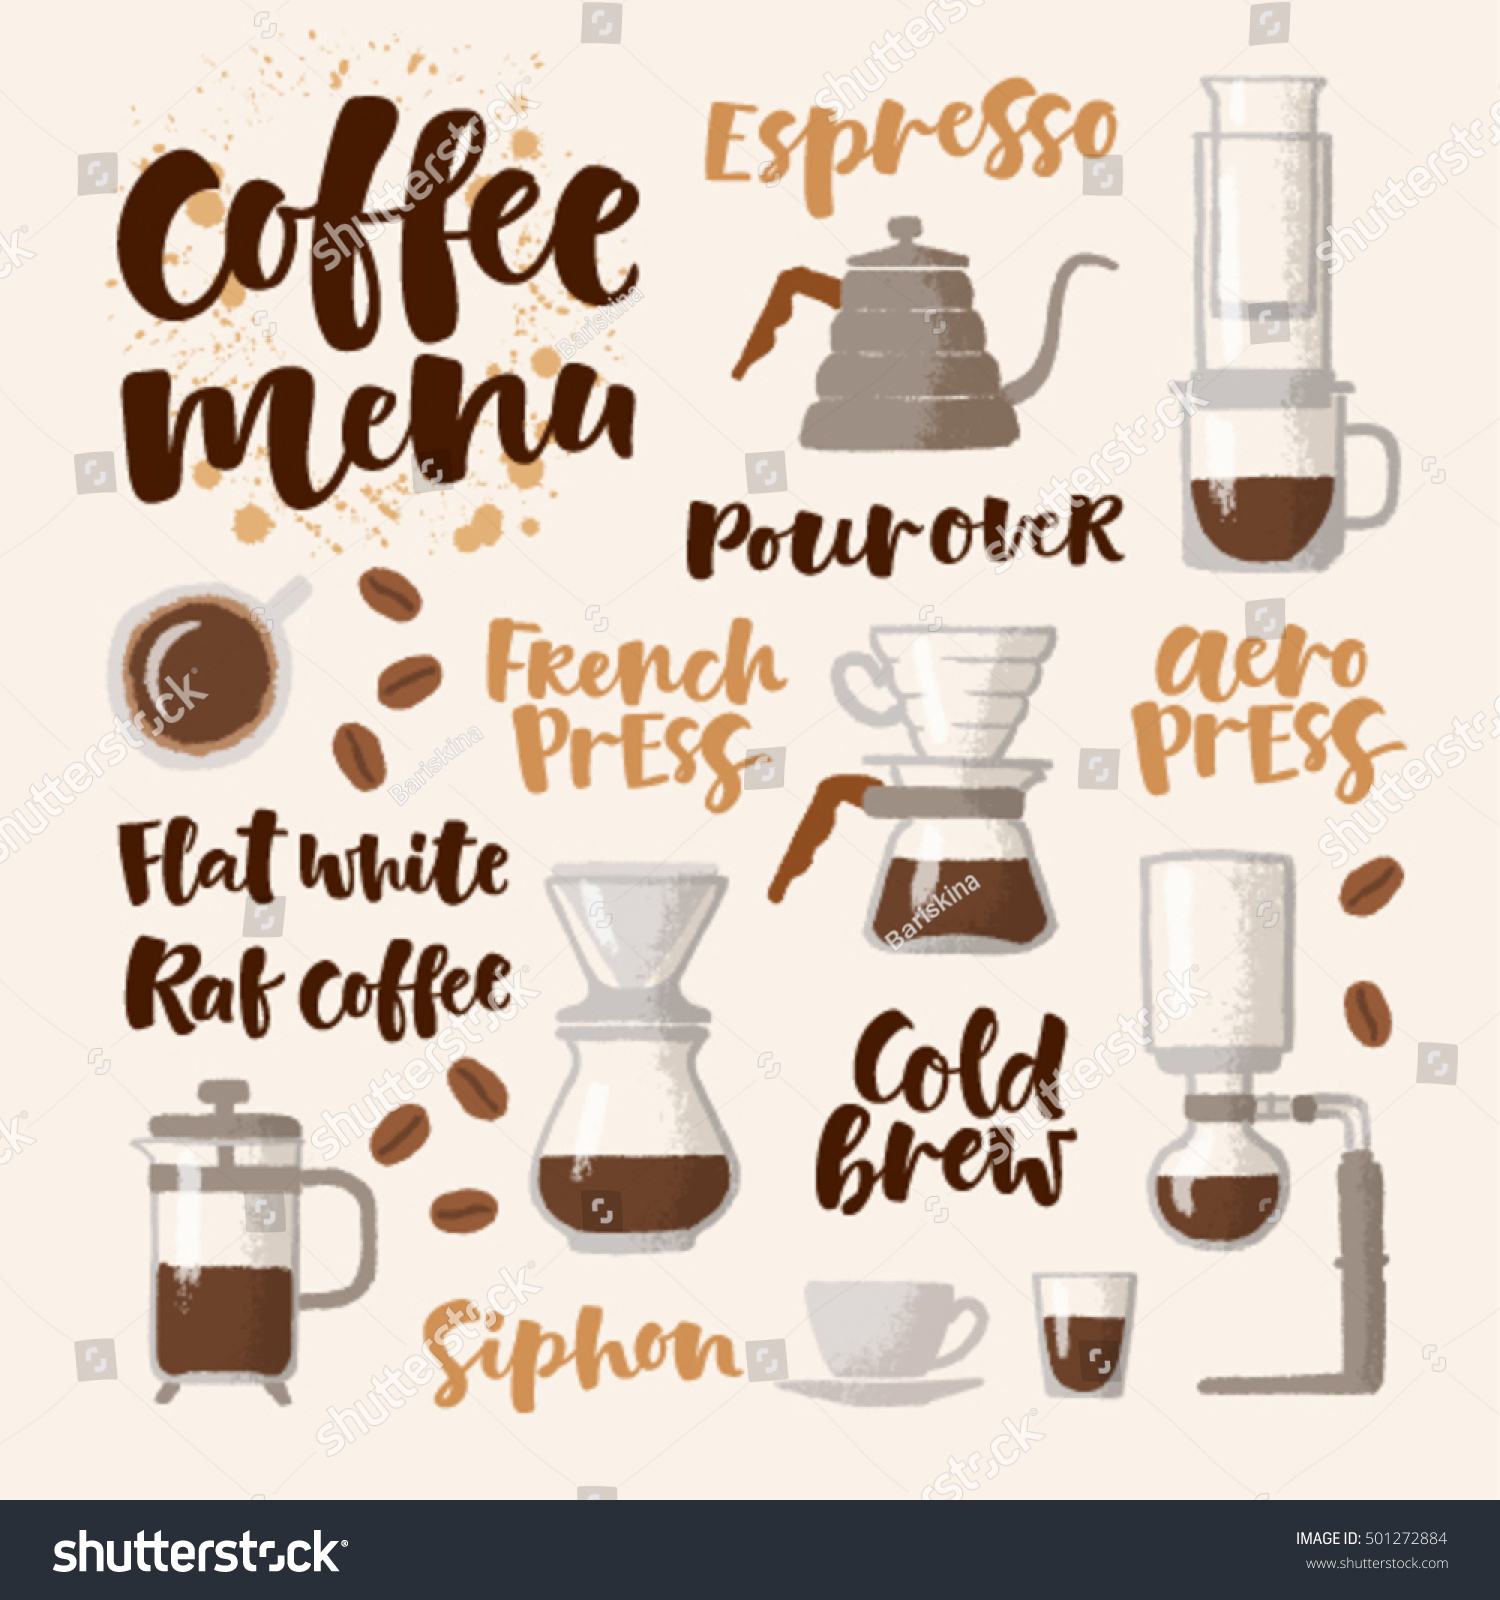 For restaurant pictures graphics illustrations clipart photos - Vector Handwritten Lettering Hand Drawn Graphic Illustration For Coffee Shop Market Cafe